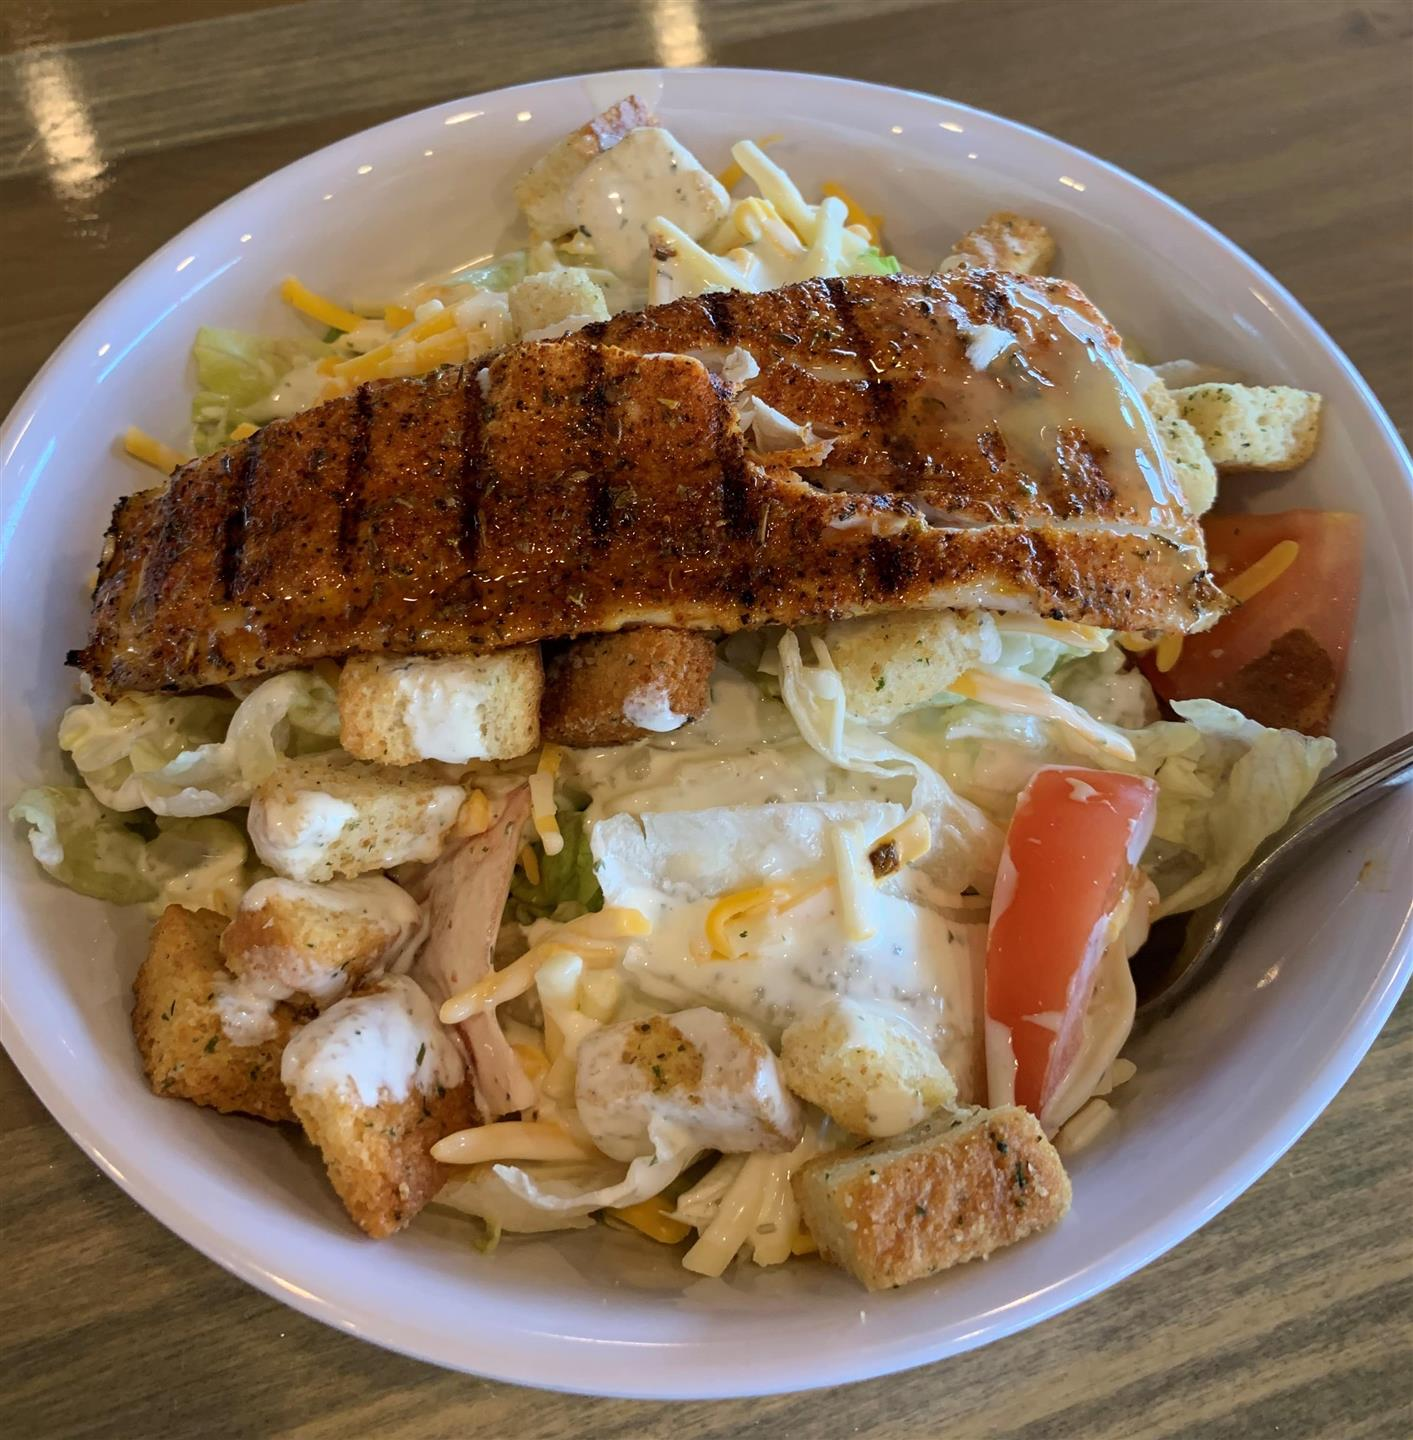 Fried fish platter on top of salad with croutons and vegetables